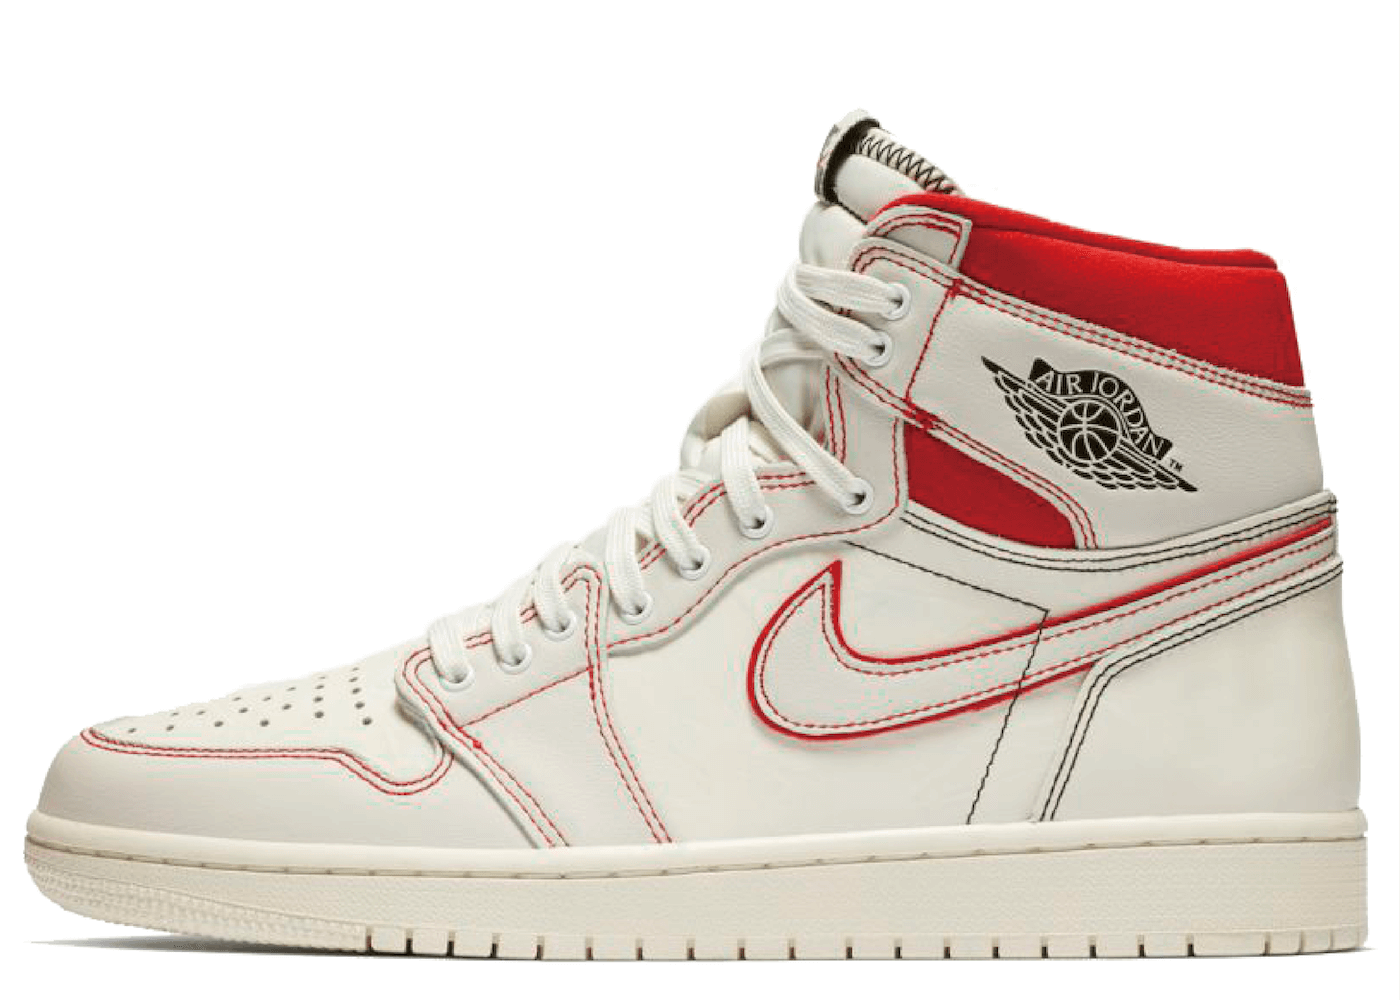 Nike Air Jordan 1 Retro High Phantom University Redの写真